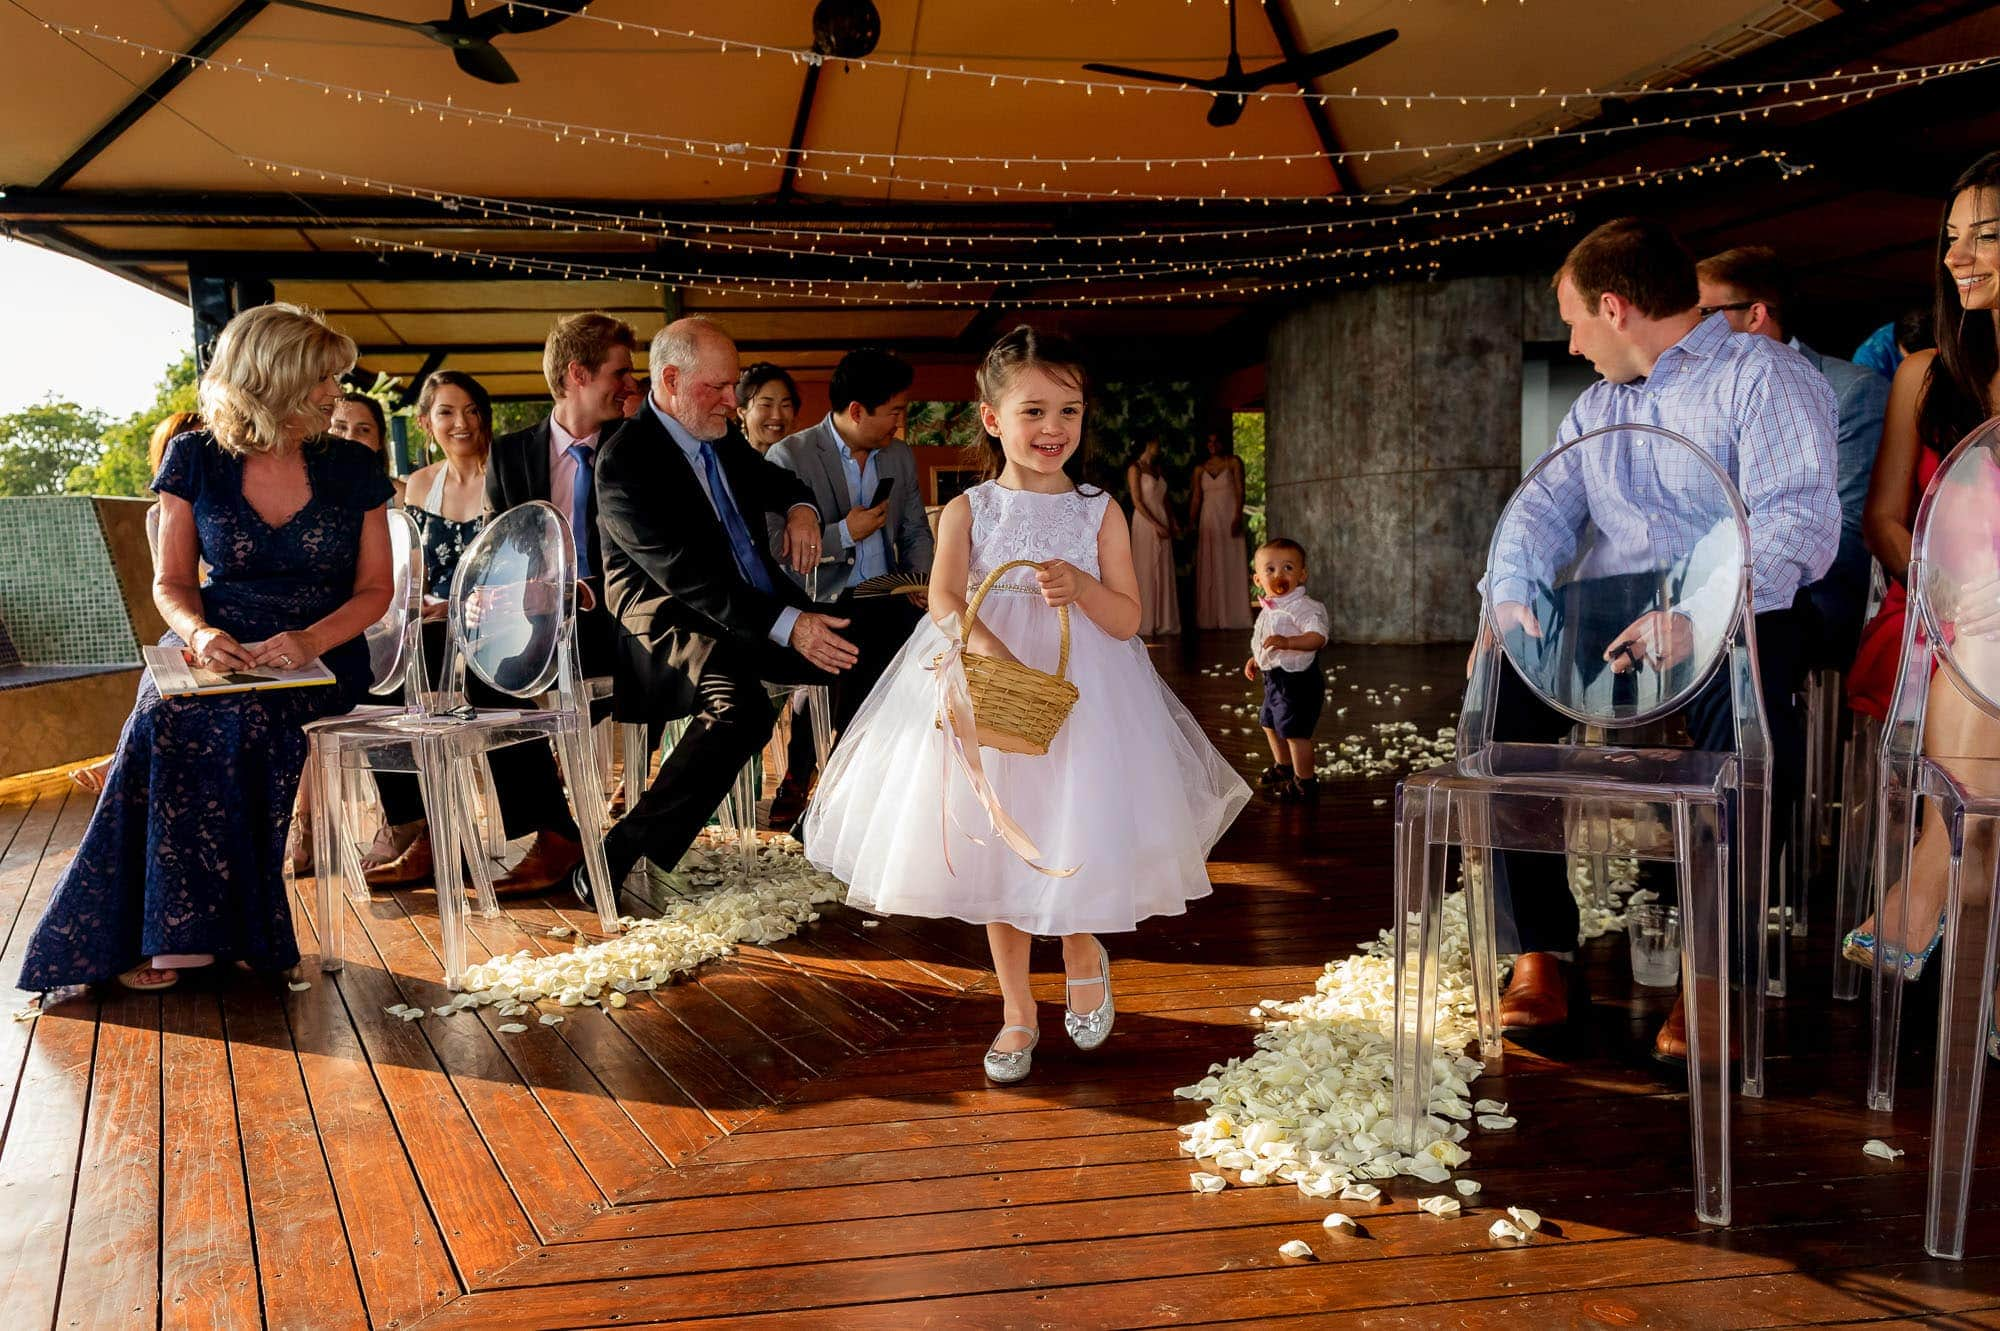 The flower girl comes down the aisle